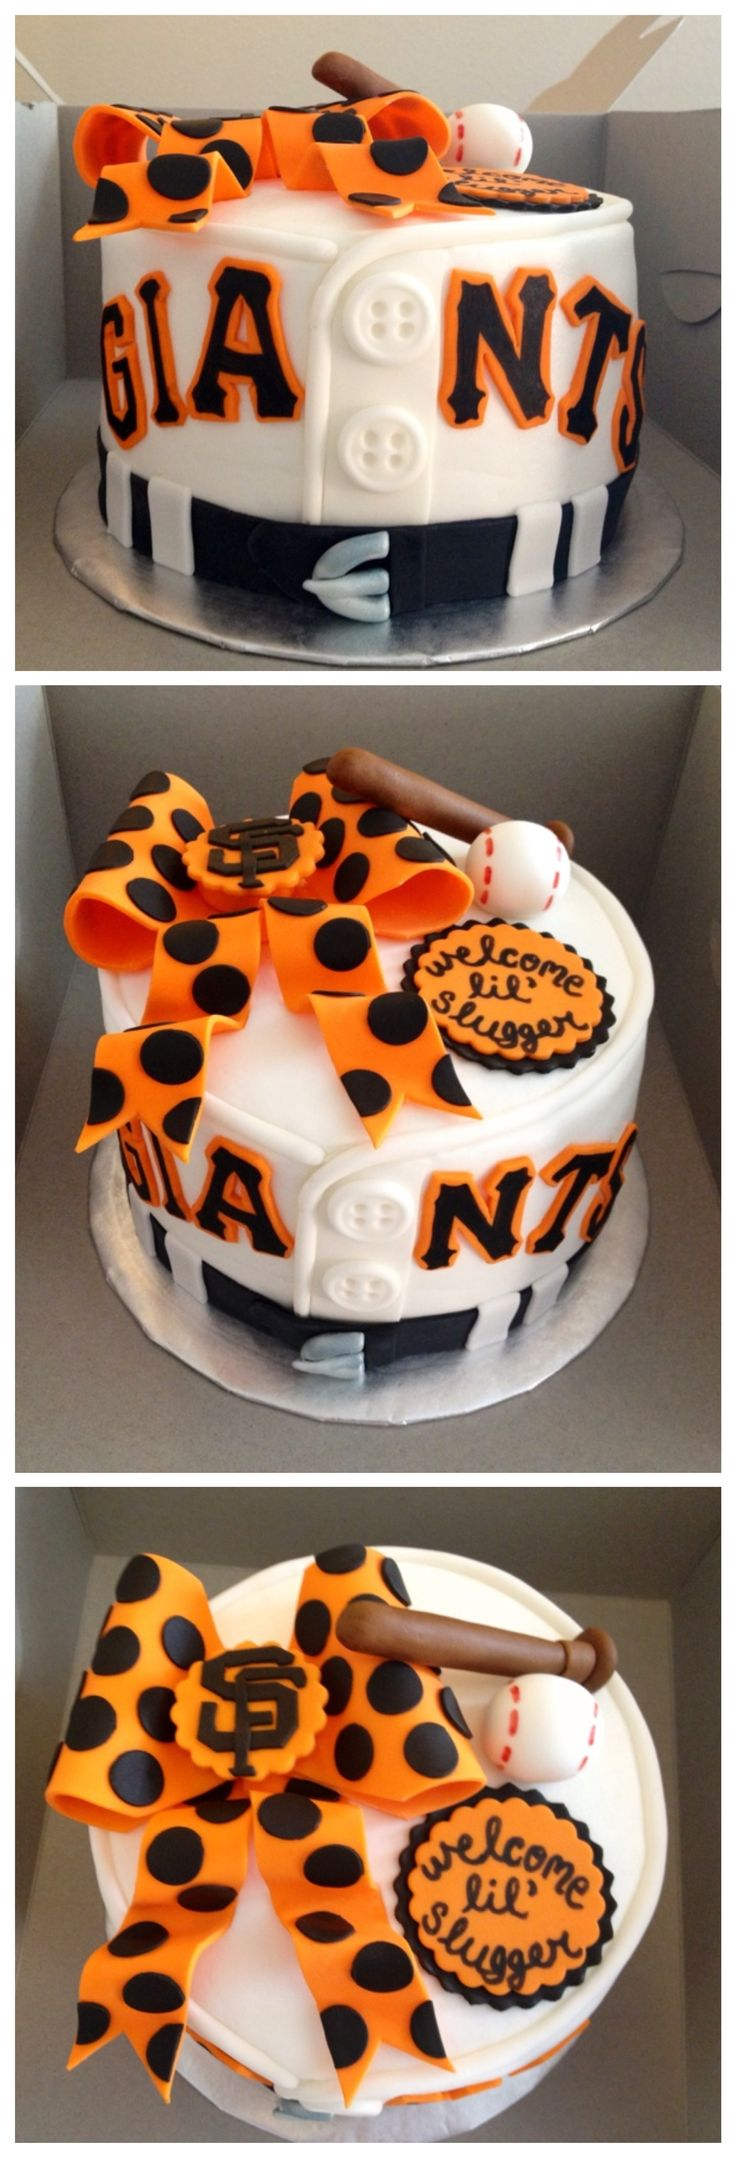 San Francisco Giants baseball themed baby shower cake for a baby girl!  By Tasha McKinley, Coleville, CA